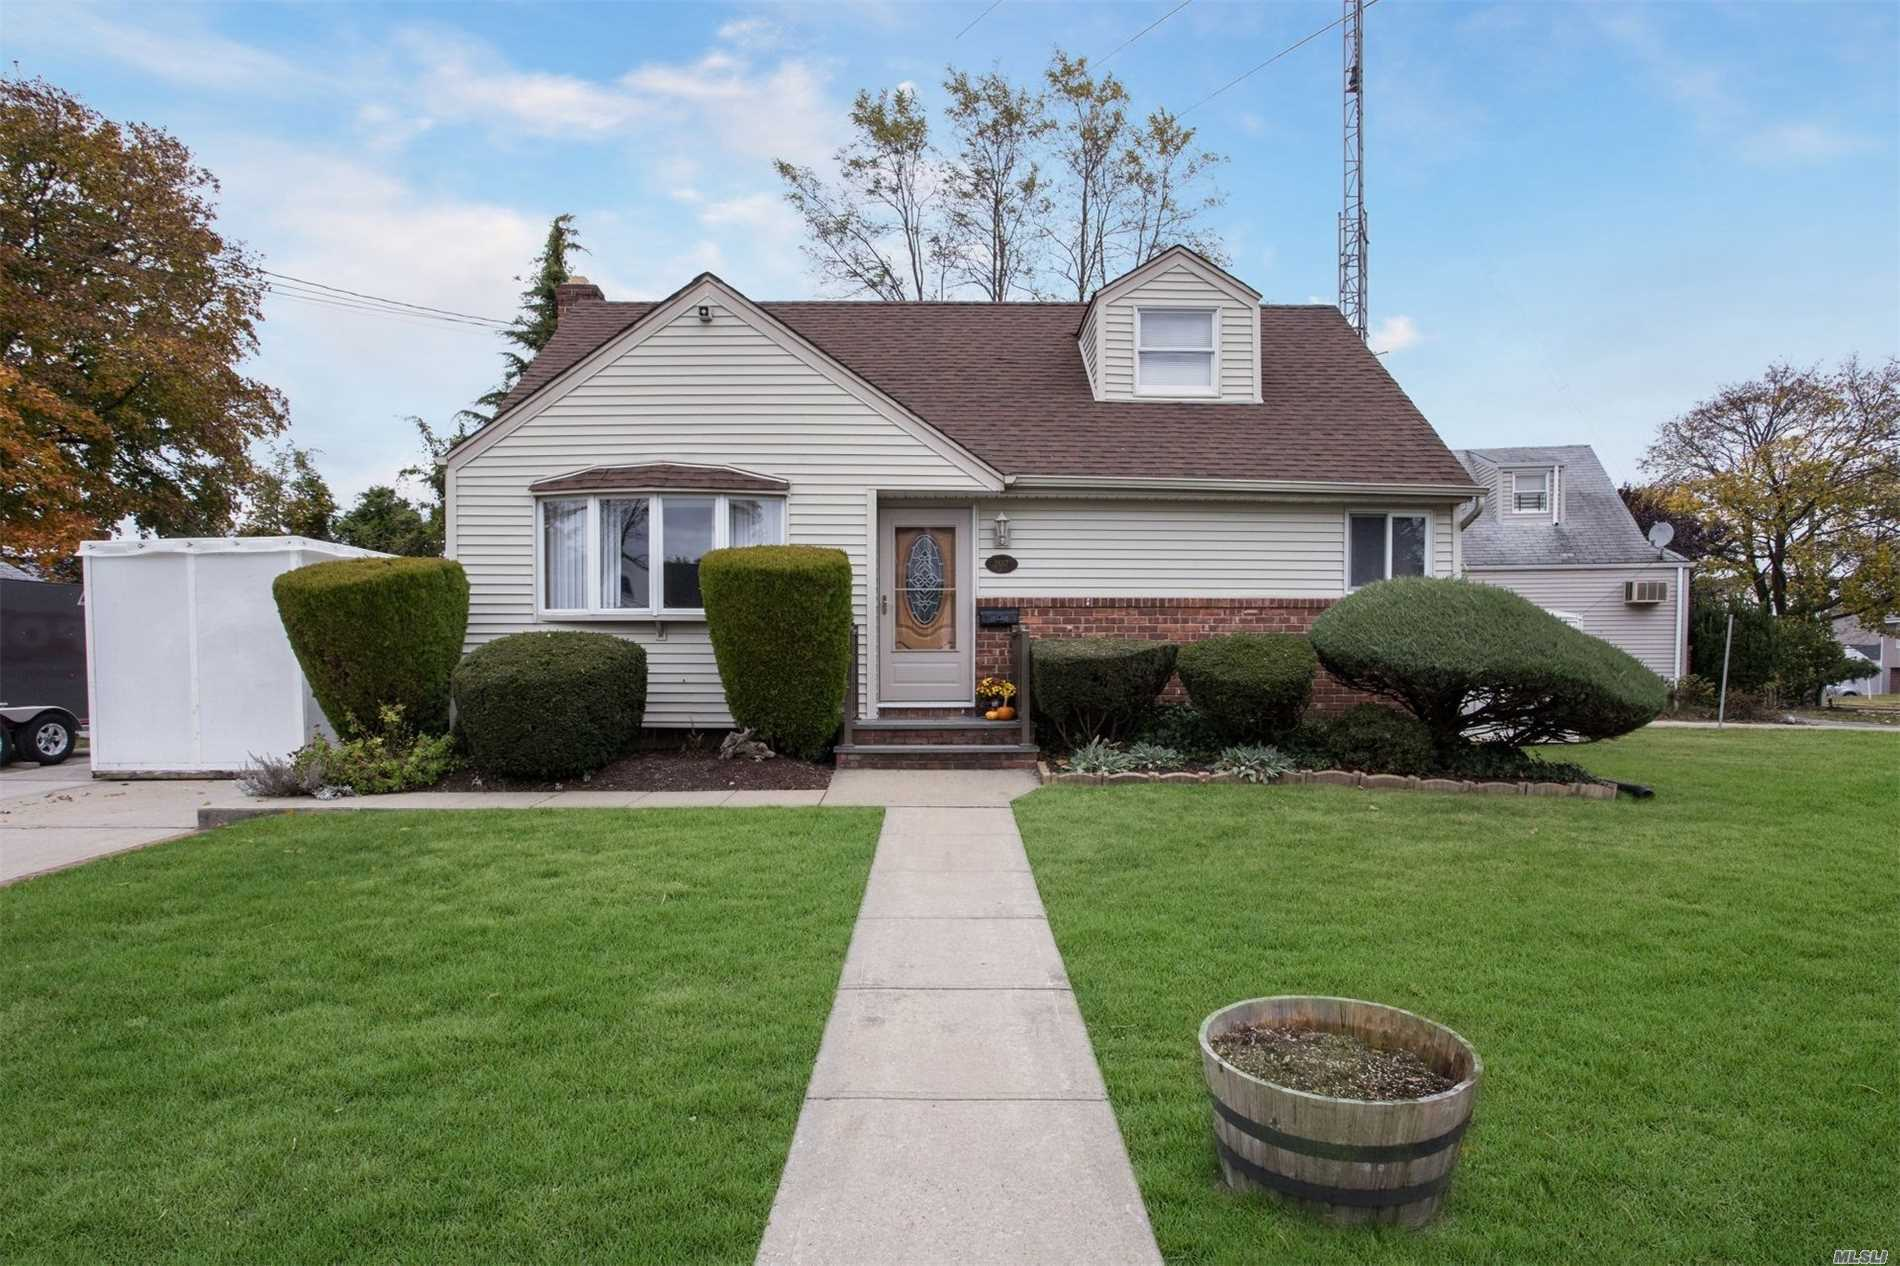 Great Starter Home. Eik W/Rear Door To Patio. Hi-Hats Throughout, 3 Ceiling Fans, 200 Amp Electric. Updated Heating System With Superstore H/W Tank With It's Own Zone. Full Unfinished Bsmt. Pvc Fencing, Big Side Yard. 4 Zone Igs, 2 New Wall A/C's. 4/5 Car Driveway. Antena/Tower Will Be Removed. Newbridge Elementary. Sheds Are A Gift.